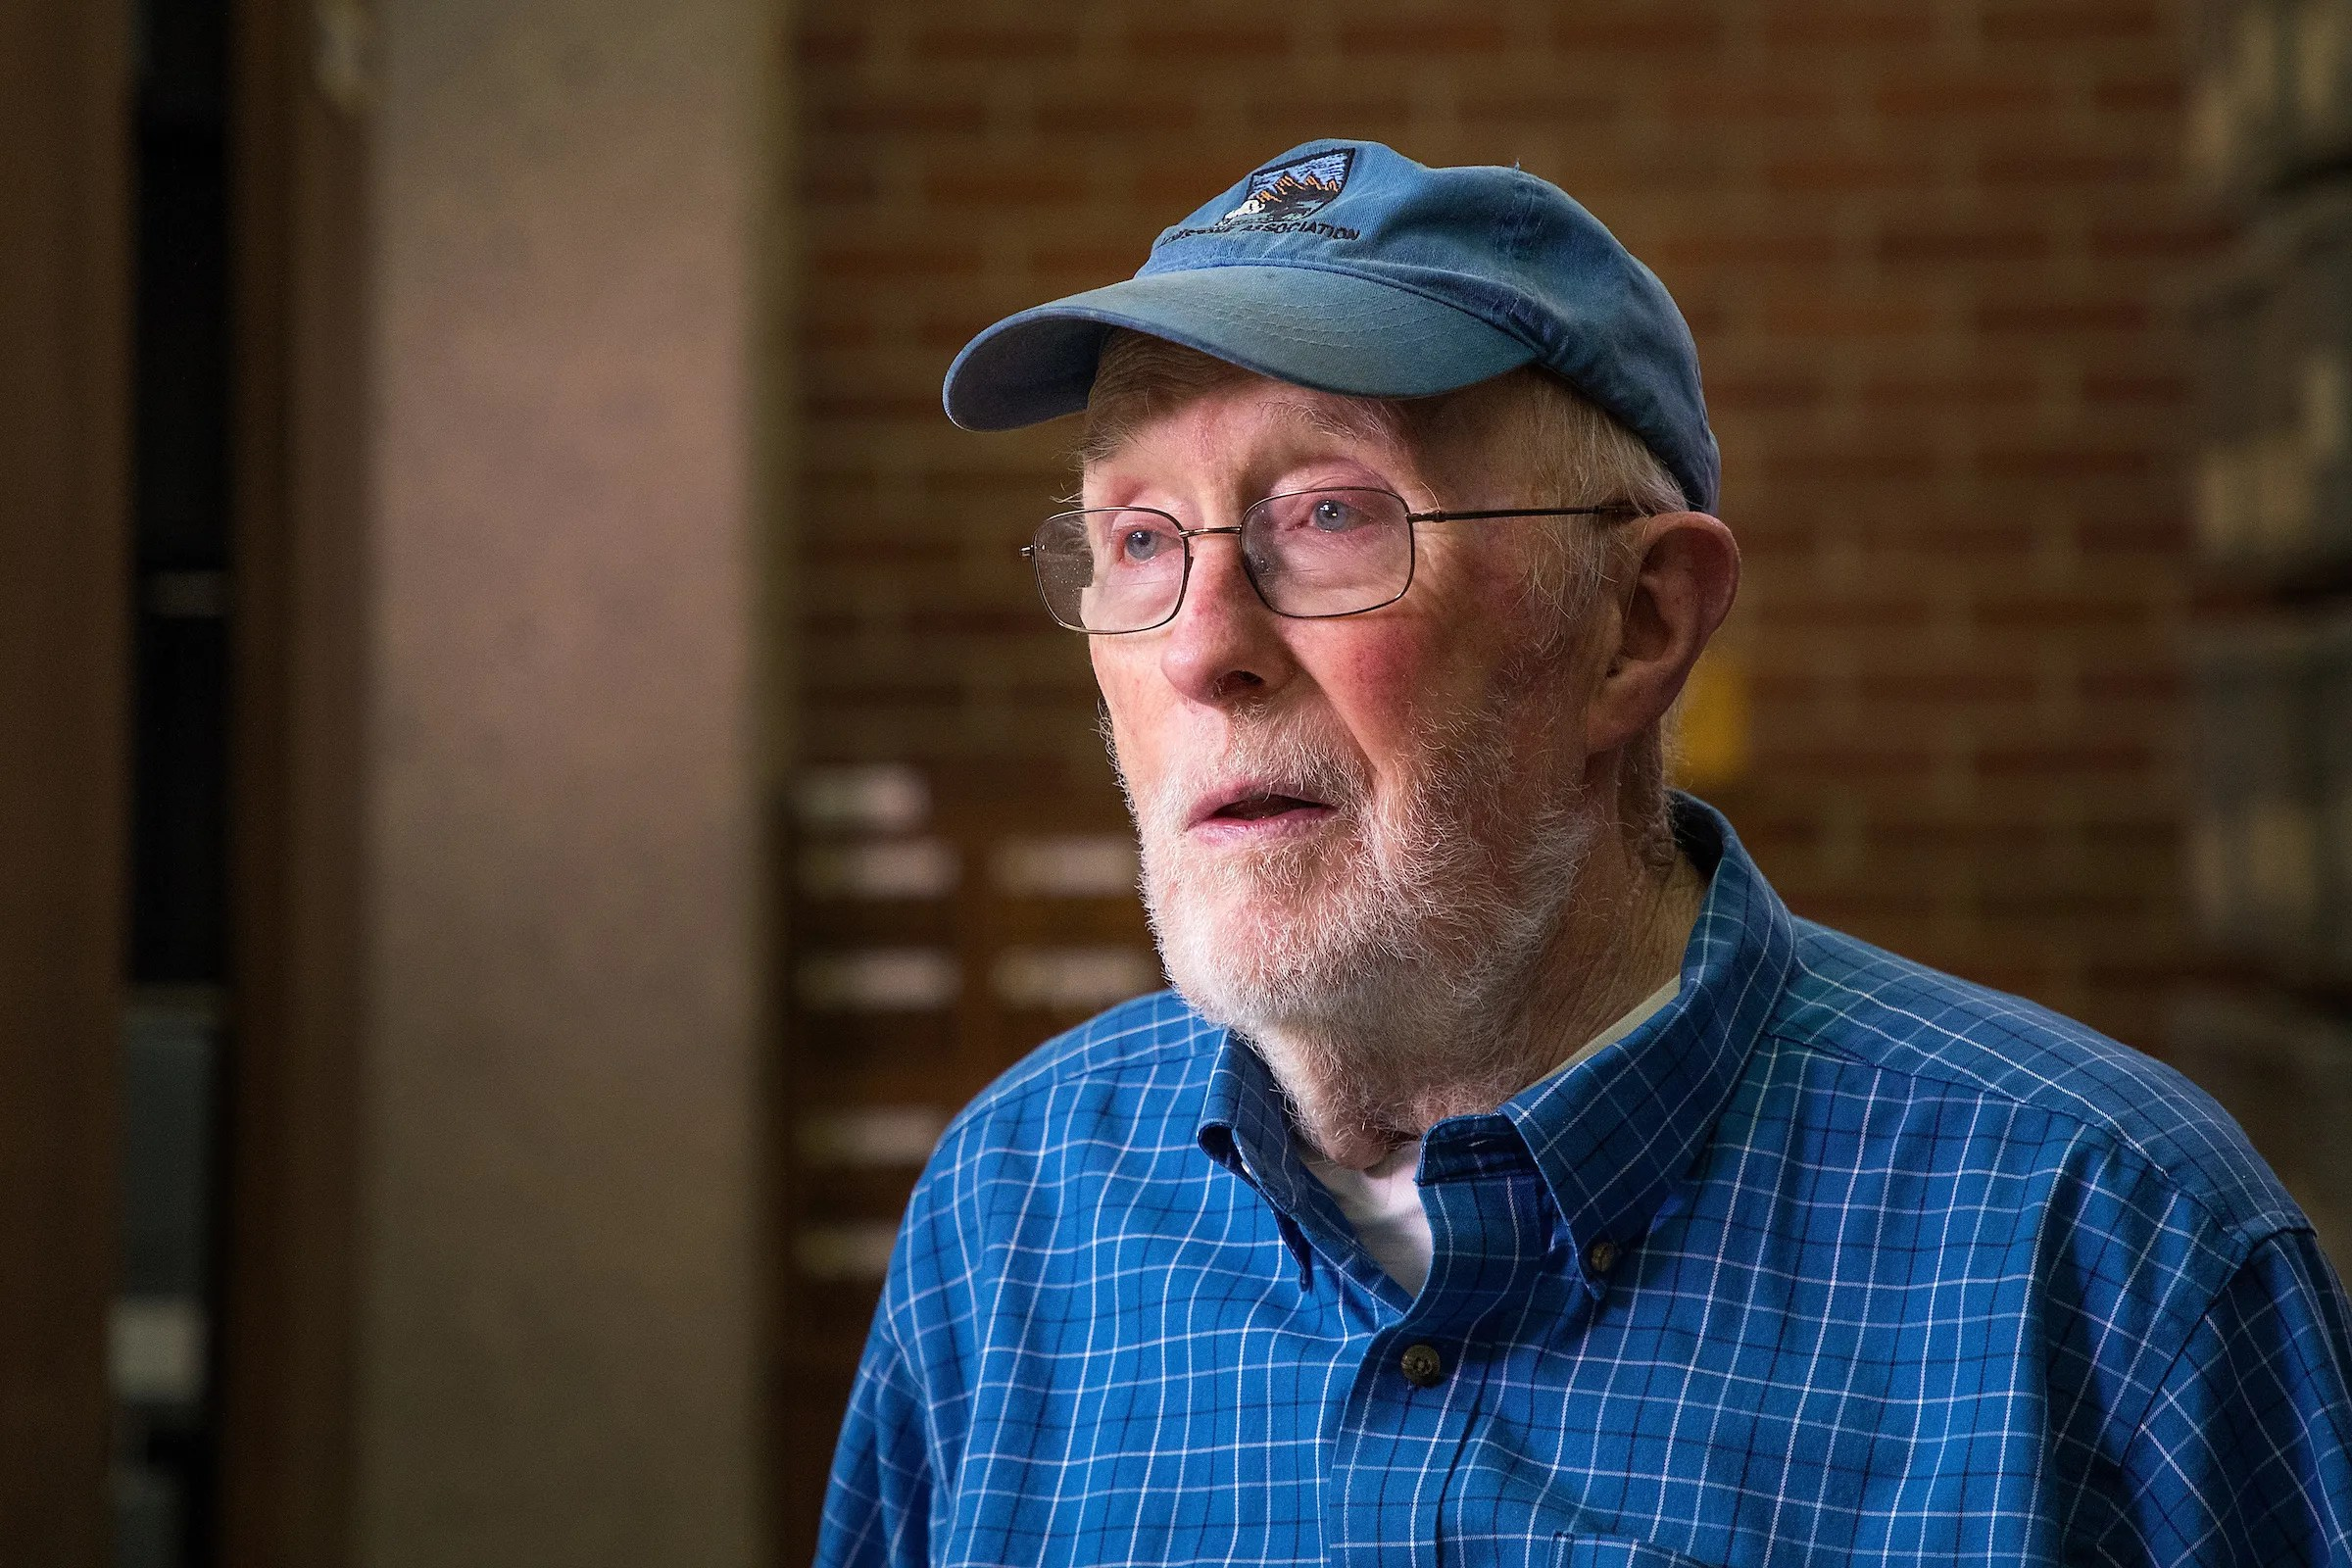 Tom Brock, Emeritus Professor of Bacteriology at UW-Madison, is pictured in 2017 during the 14th Annual Rotunda Research, an event that showcases the work of UW undergraduates at the Capitol Rotunda in Madison, Wisconsin .